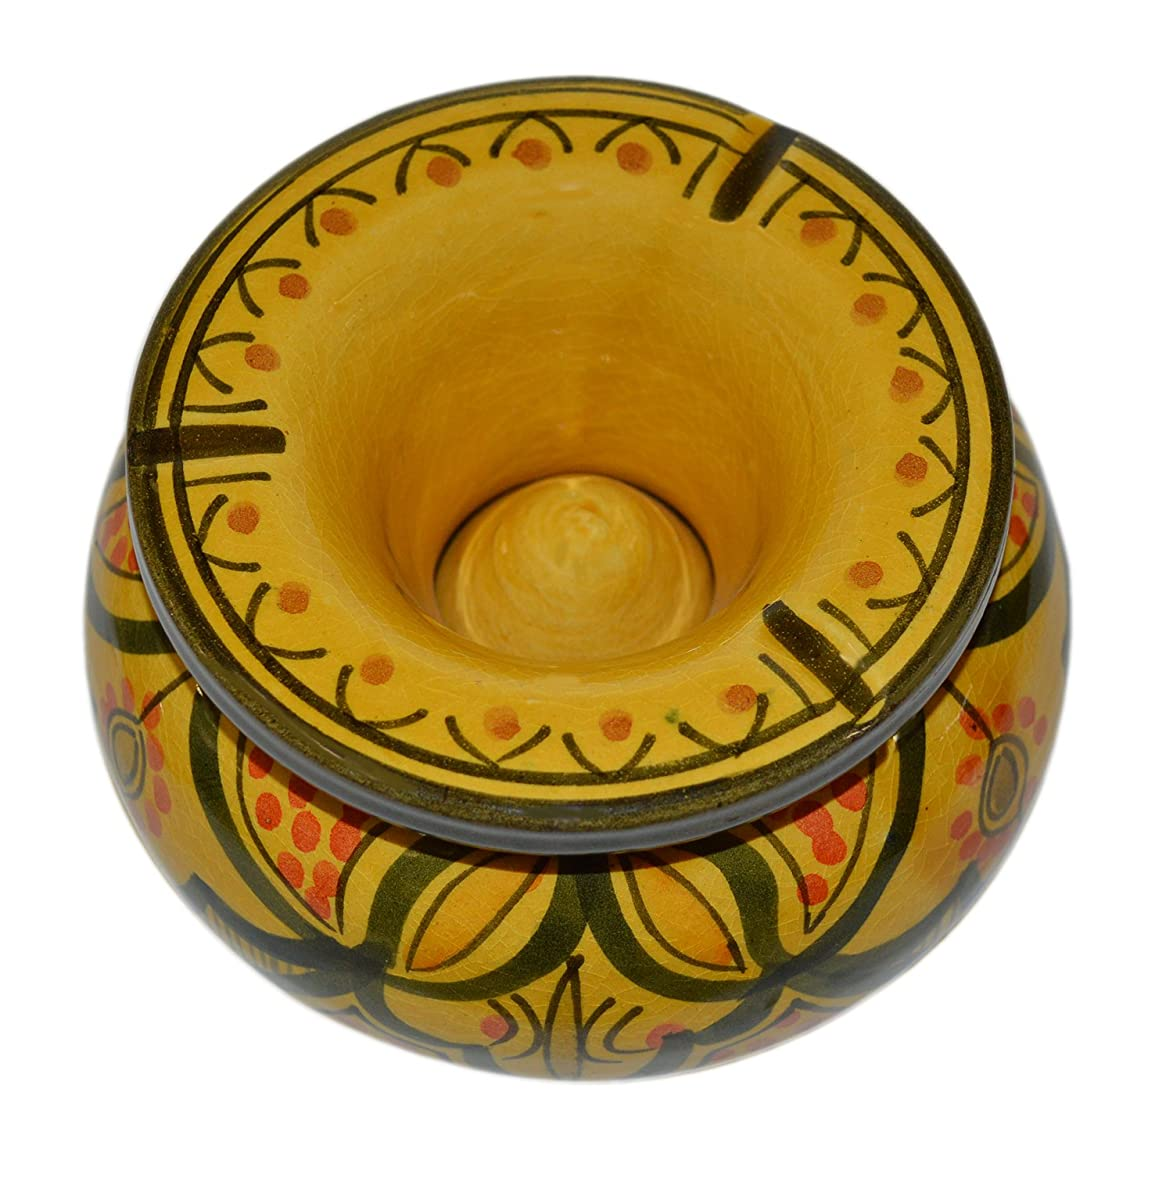 Moroccan Handmade Ceramic Ashtrays Smokeless Cigar Exquisite design with Vivid Colors large